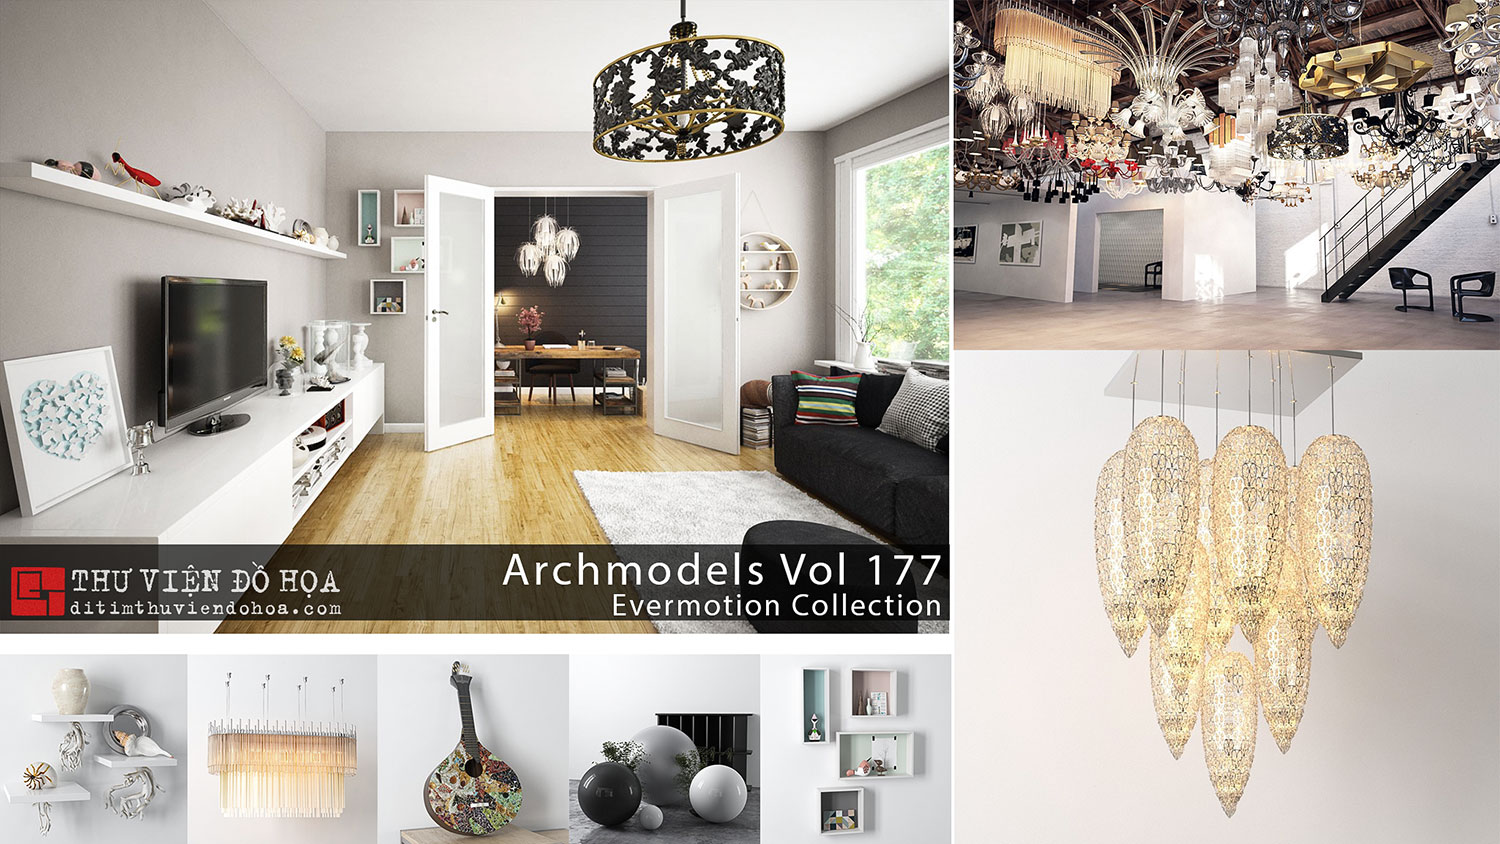 Evermotion Archmodels Vol 177